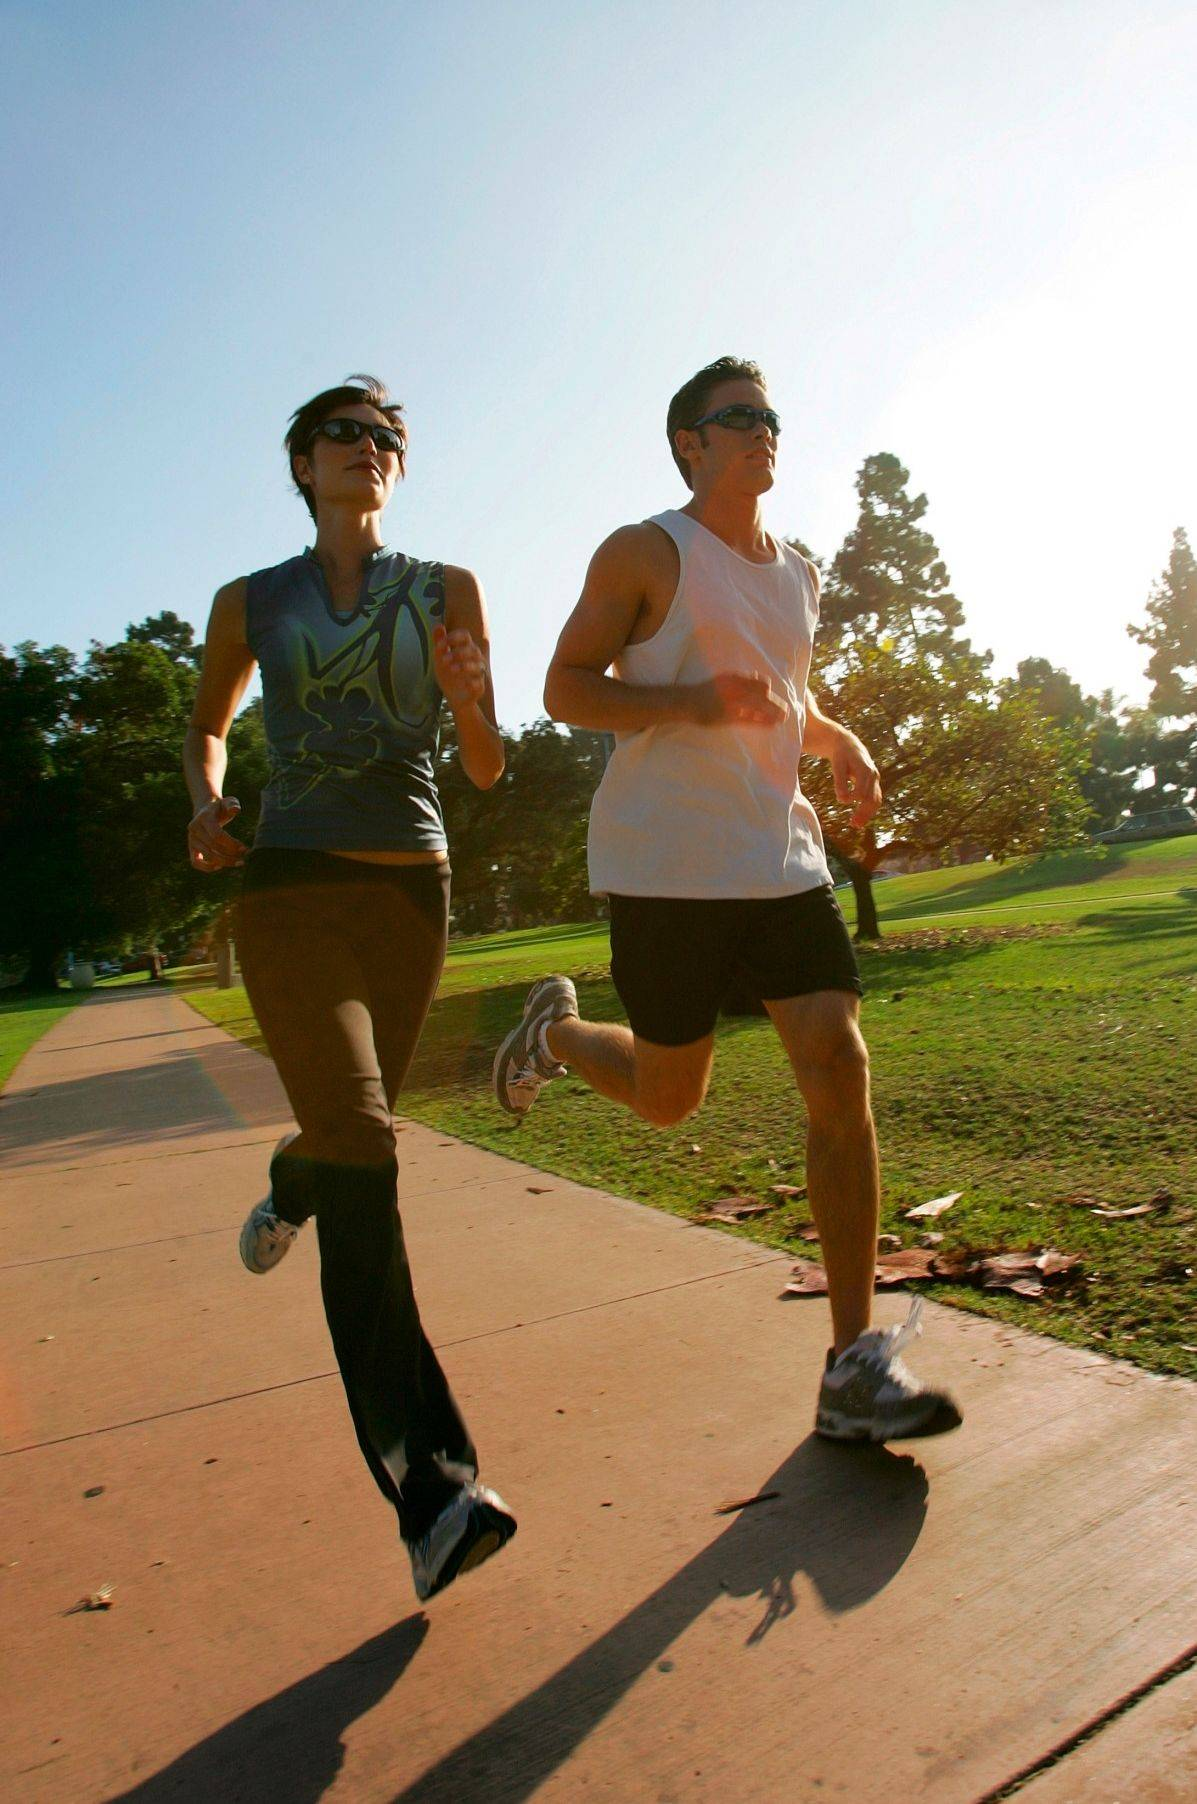 Make running a social activity, either with a friend or online, to get the most out of it.